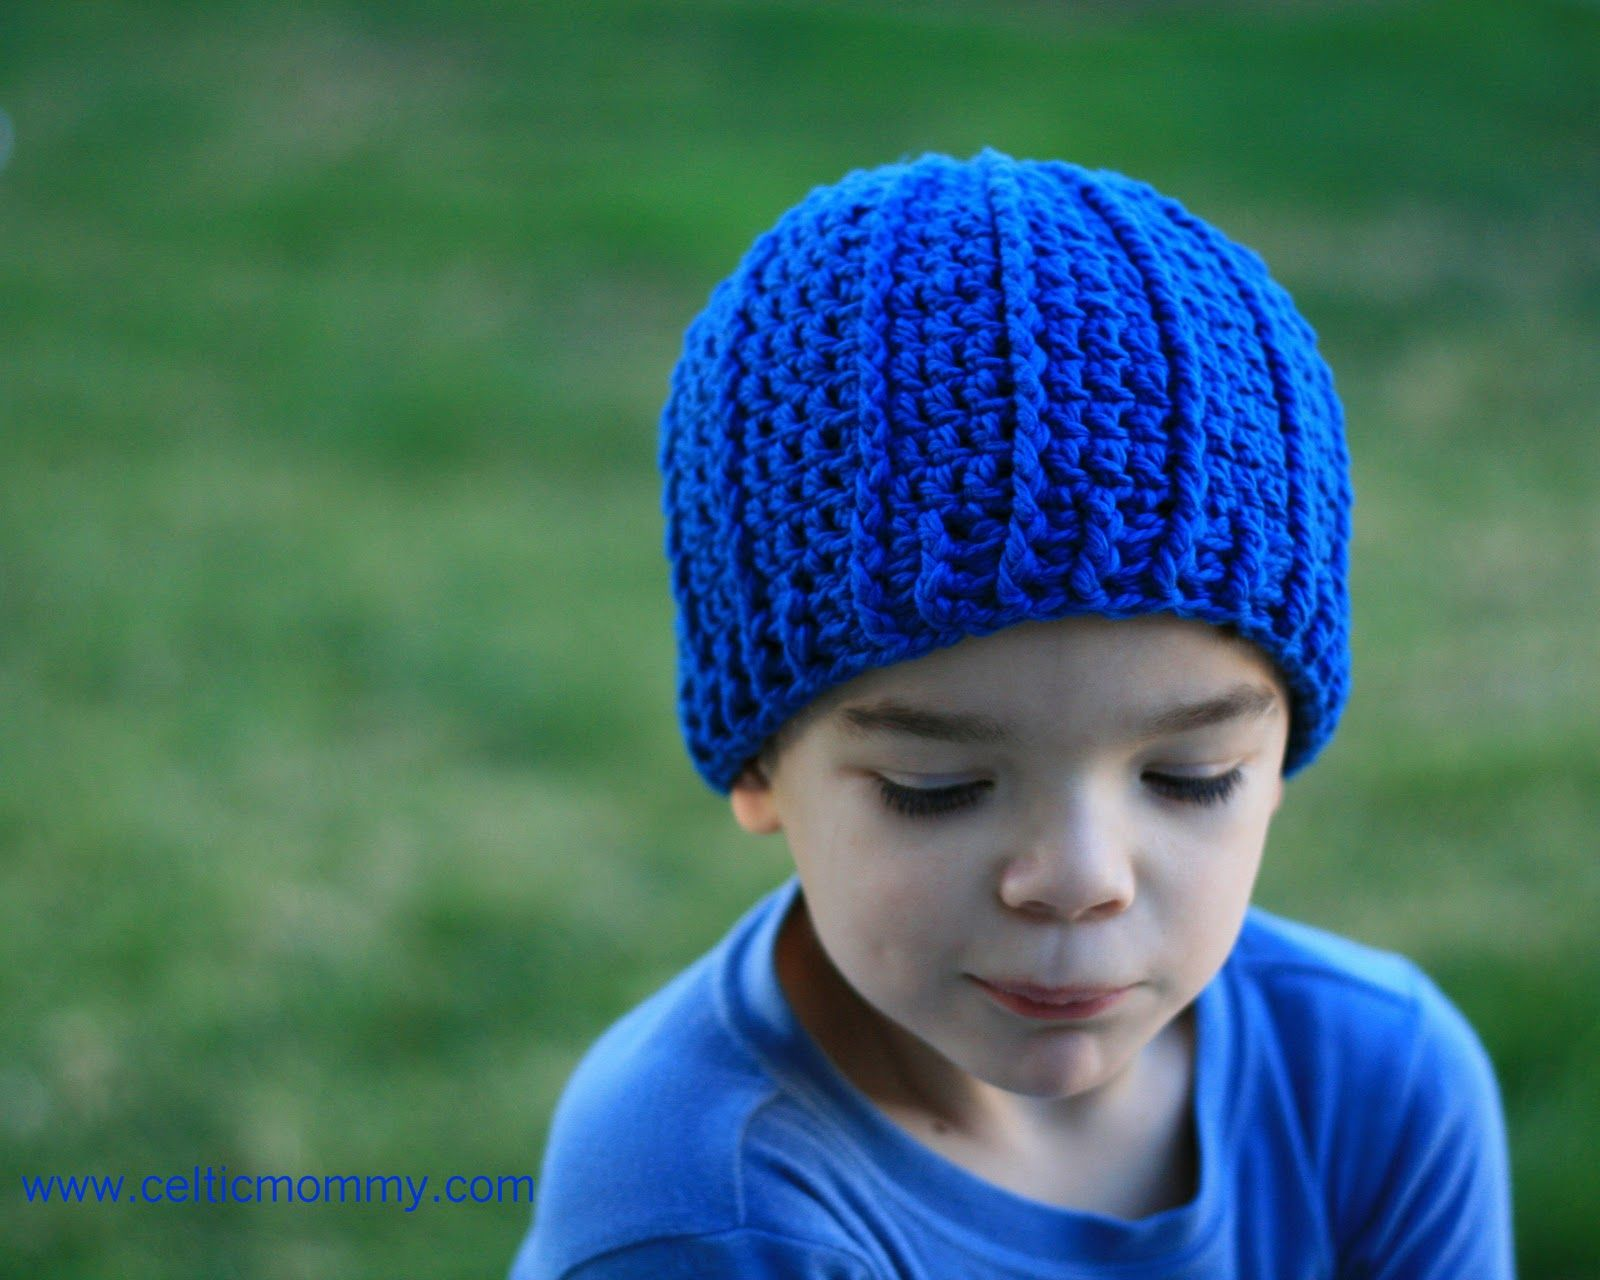 2335 best crocheted hats headbands images on pinterest celticmommy free crochet pattern rib wrapped cap for children bankloansurffo Images